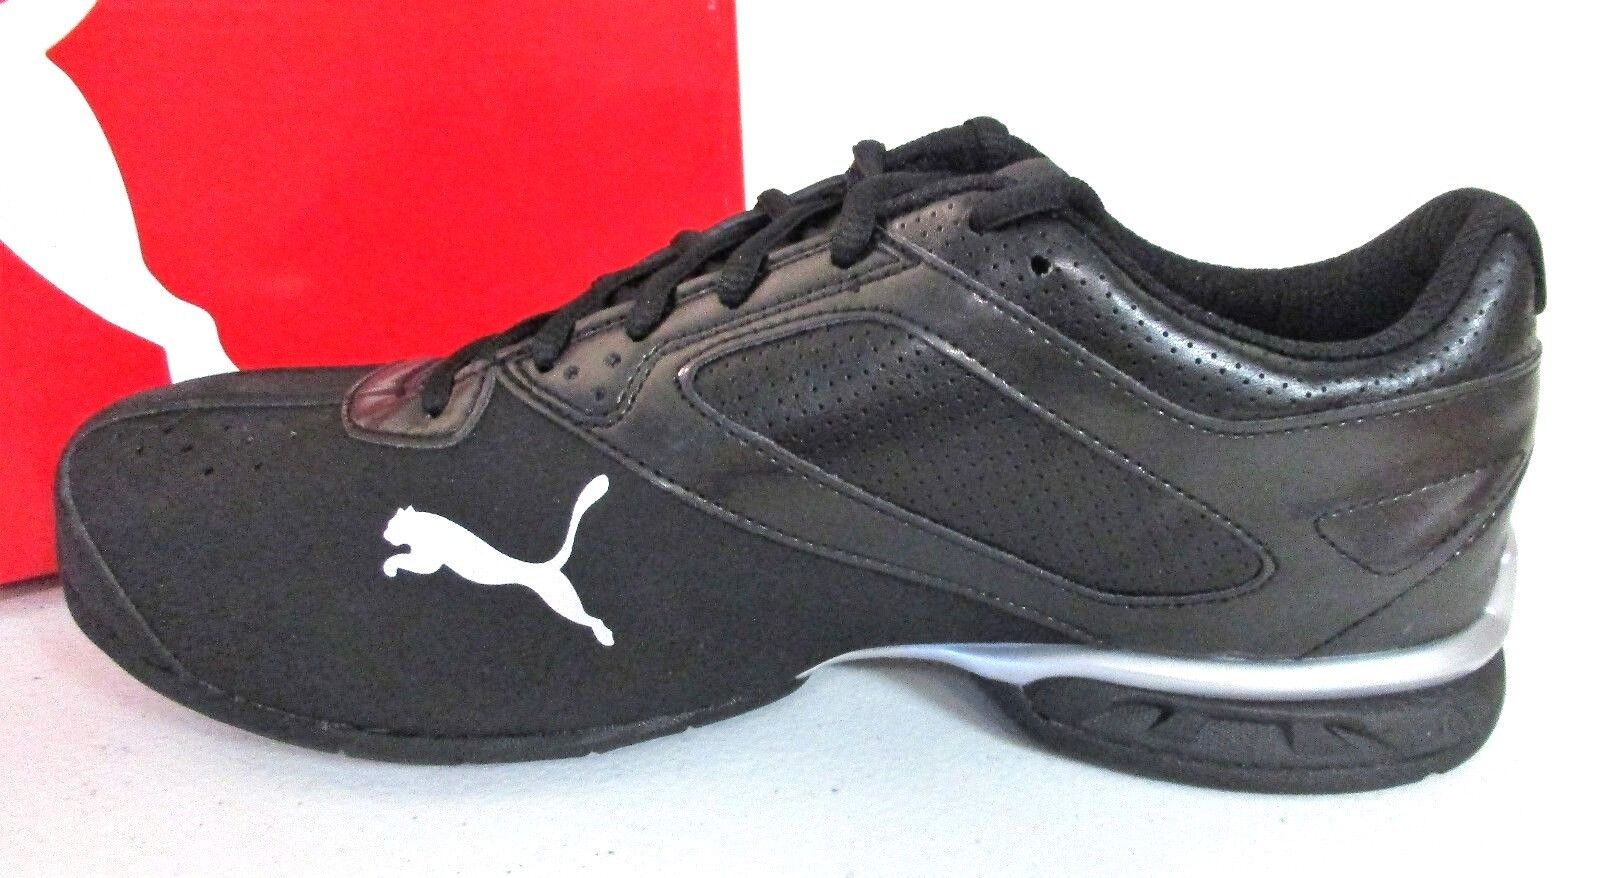 PUMA Men's Tazon 6 Black / Puma Silver Running Shoe SZ 8 M US 6199 []